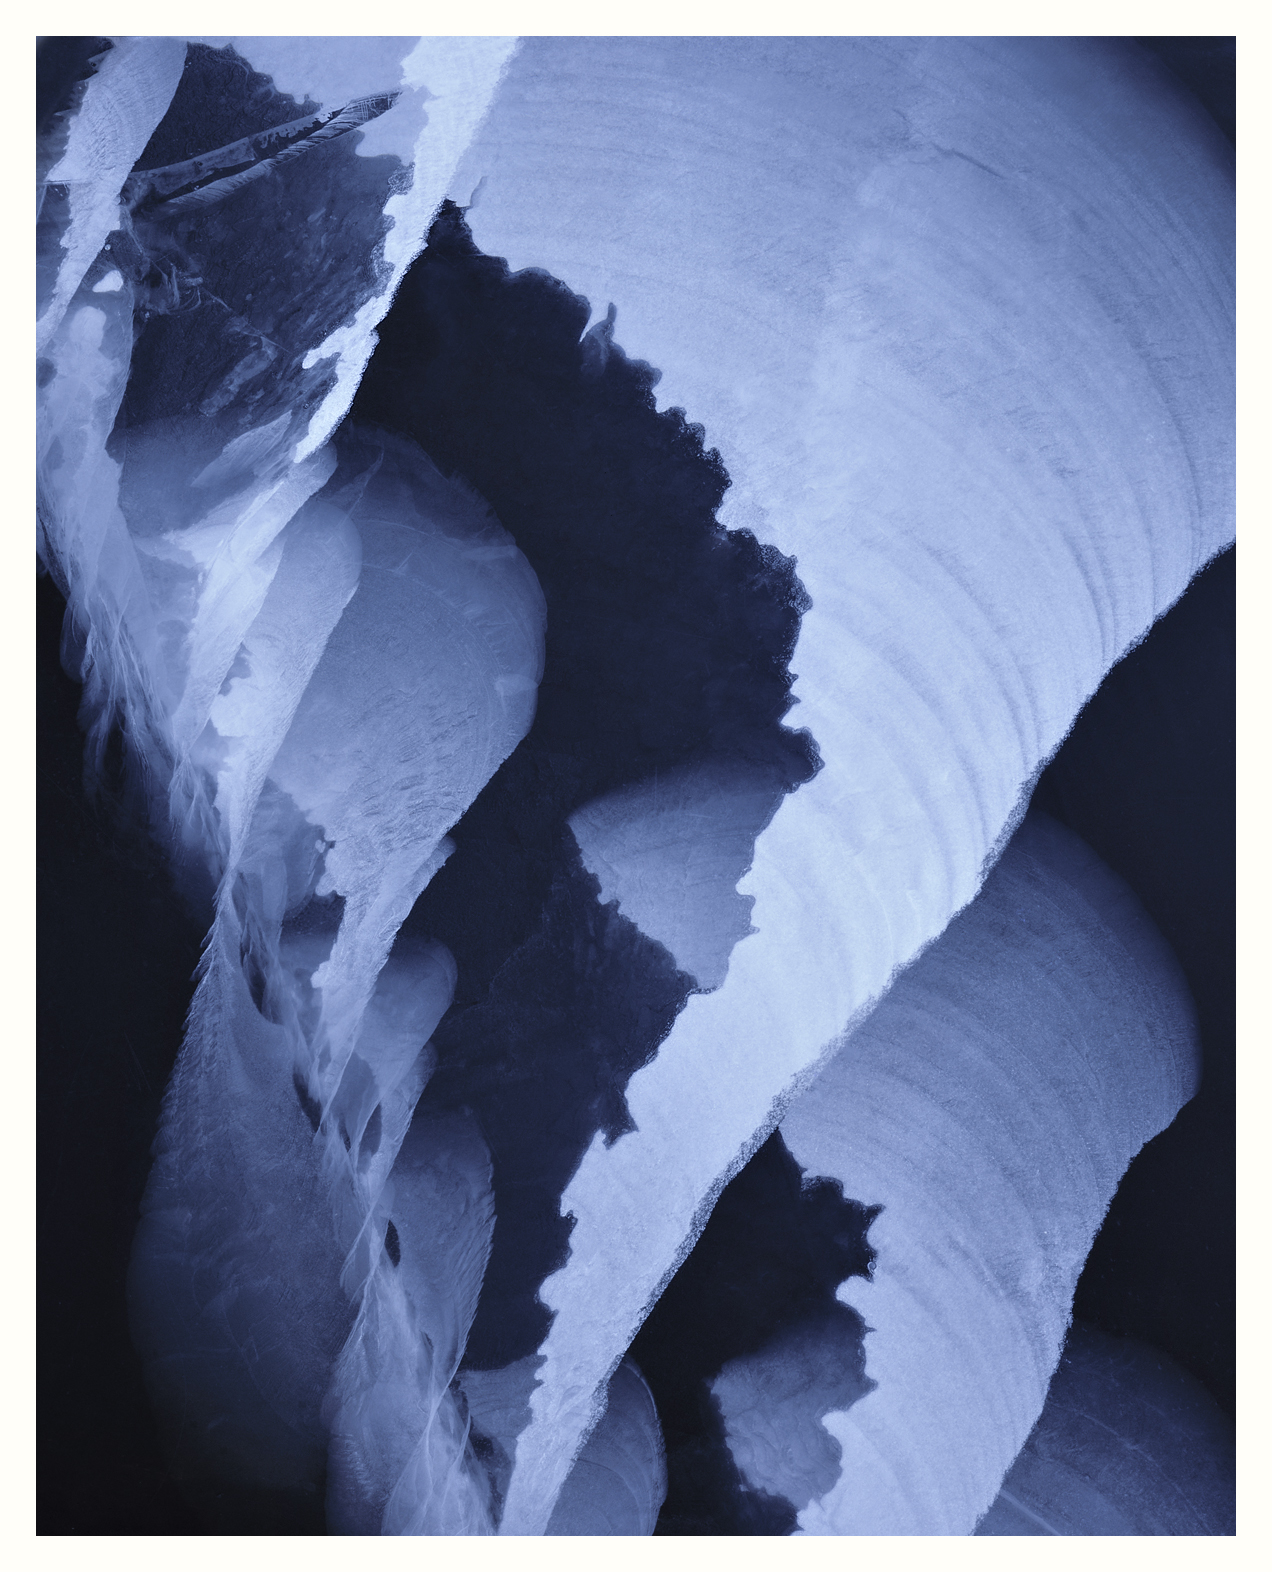 Spiral Ice Fracture